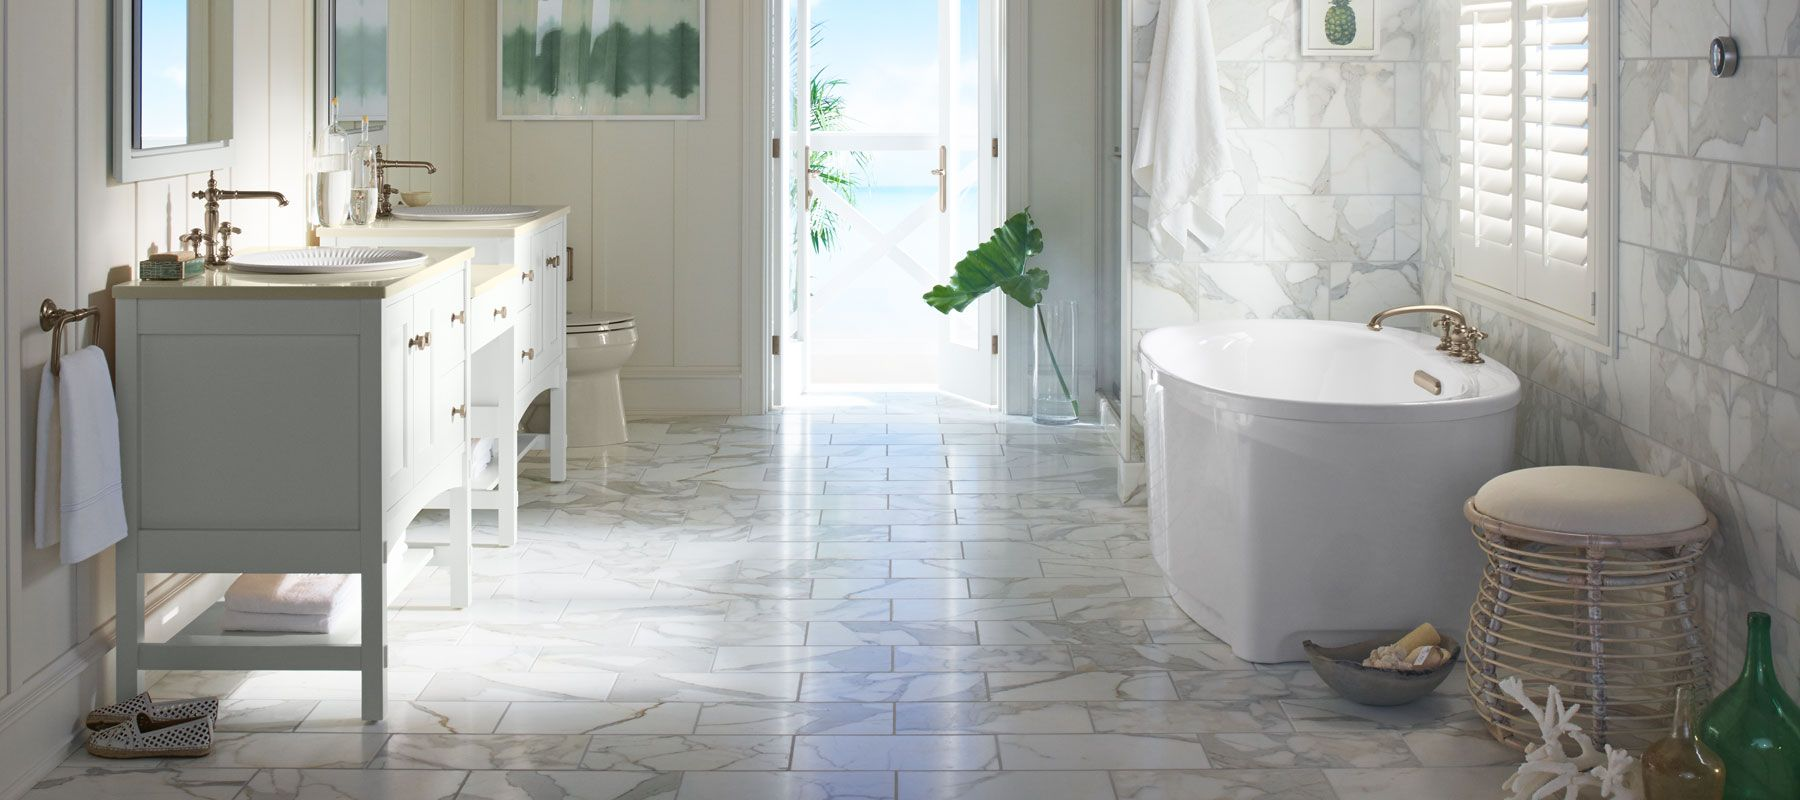 floor plan options | bathroom ideas & planning | bathroom | kohler